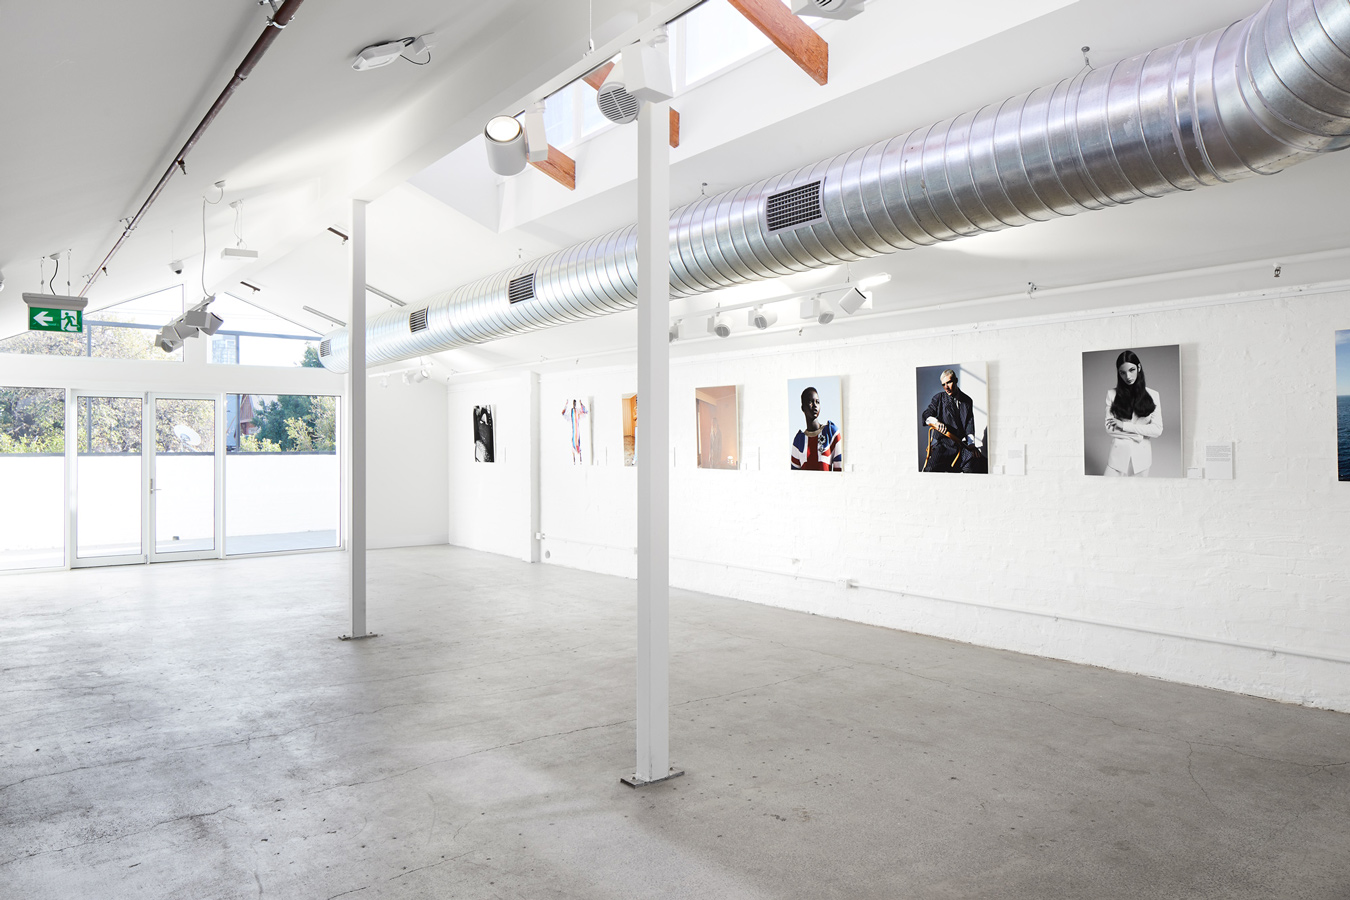 SUNSTUDIOS Melbourne Skylight Gallery professional photography exhibition space for hire